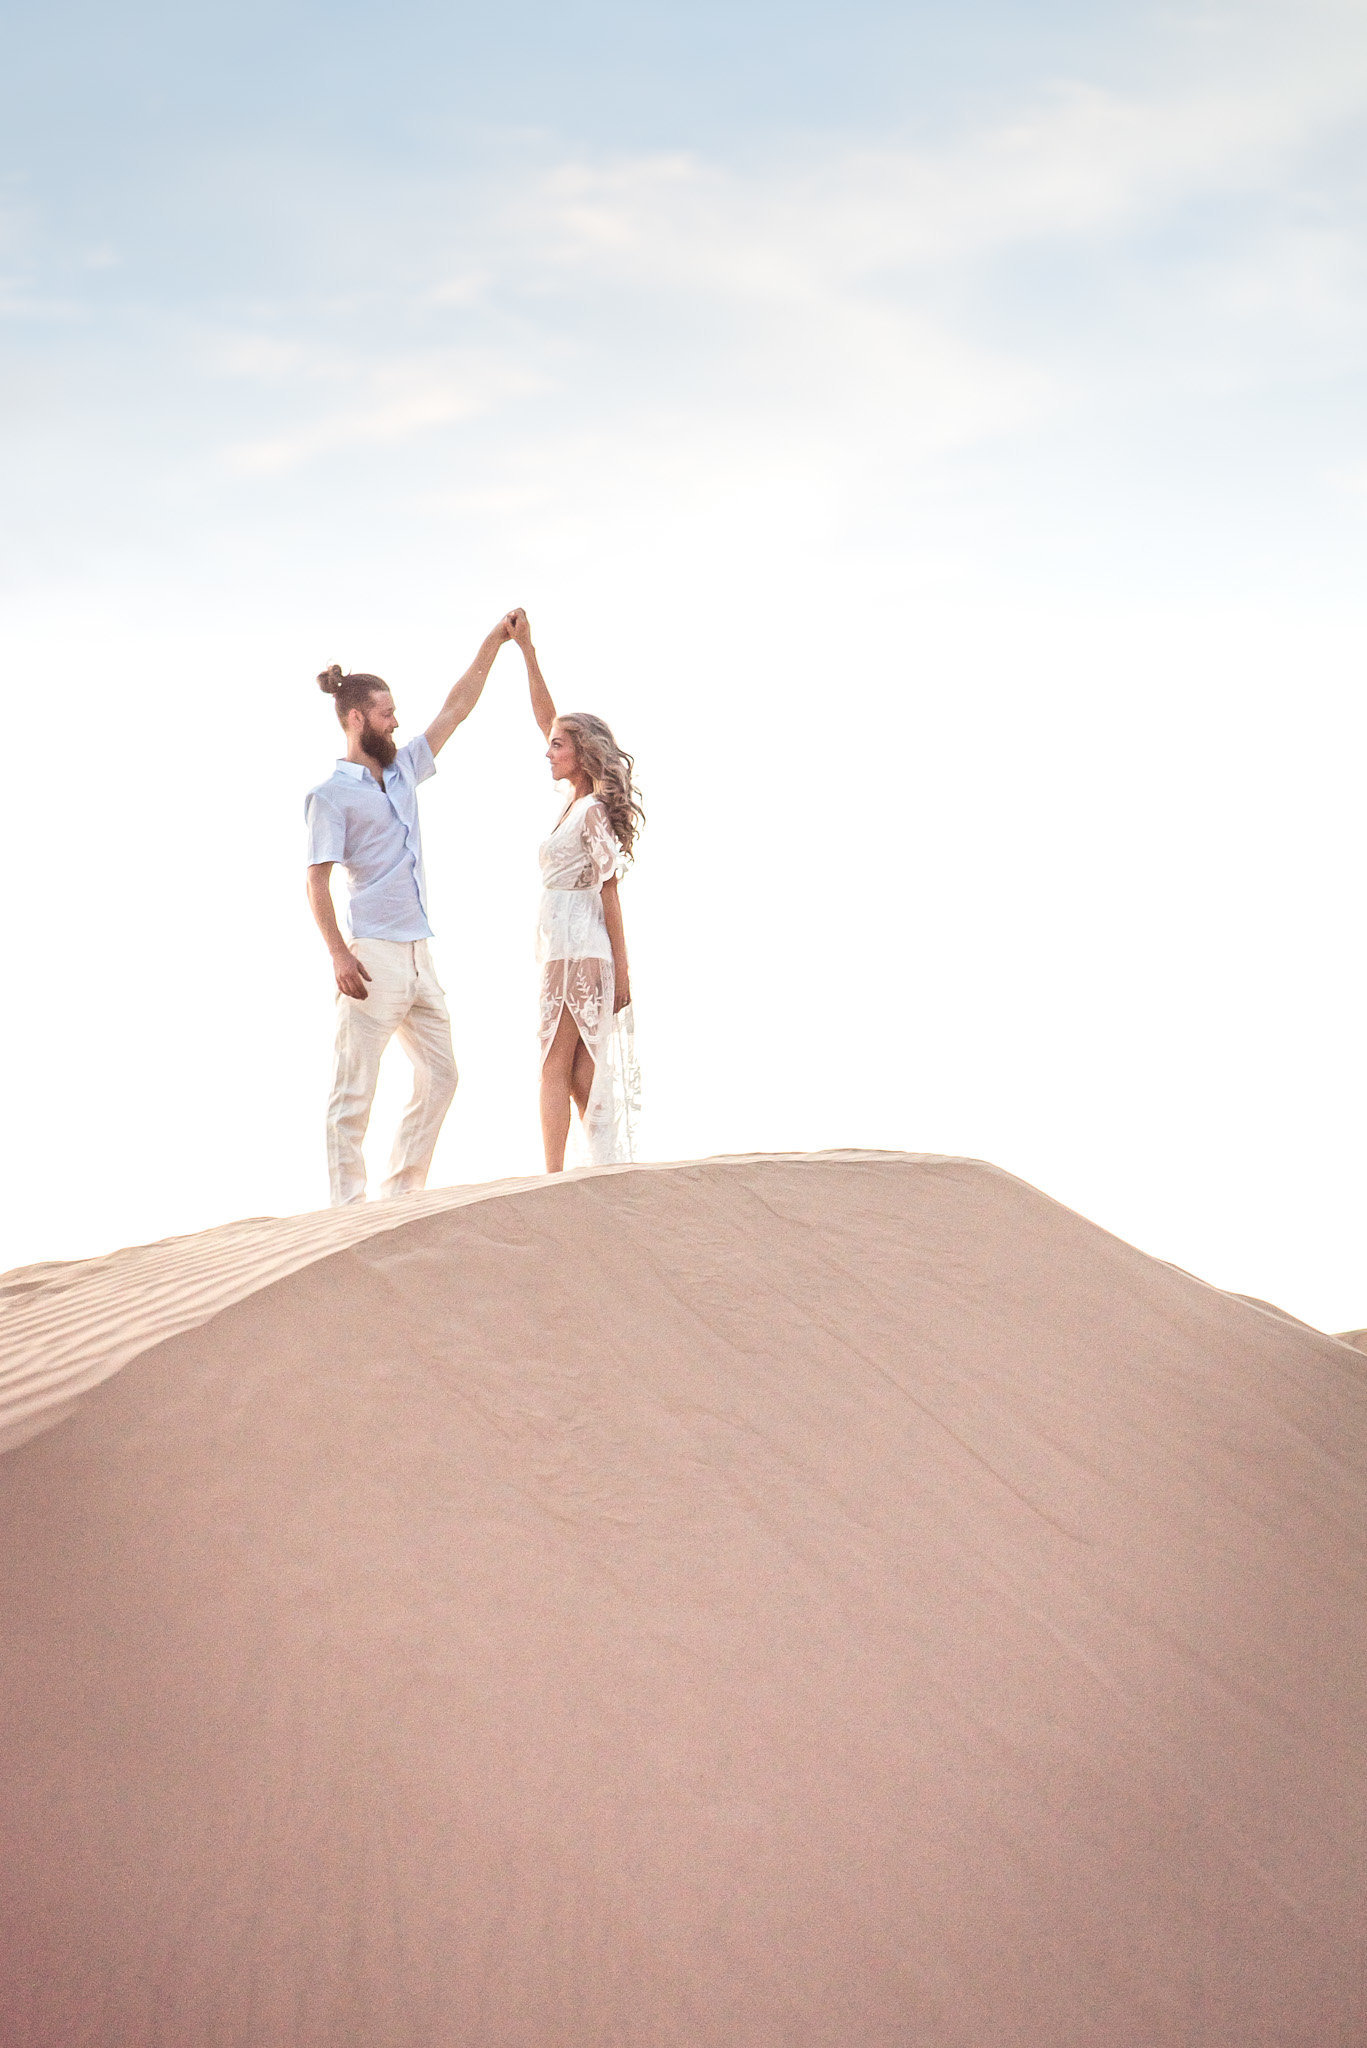 Glamis sand dunes boho wedding photo of Bride and Groom dancing